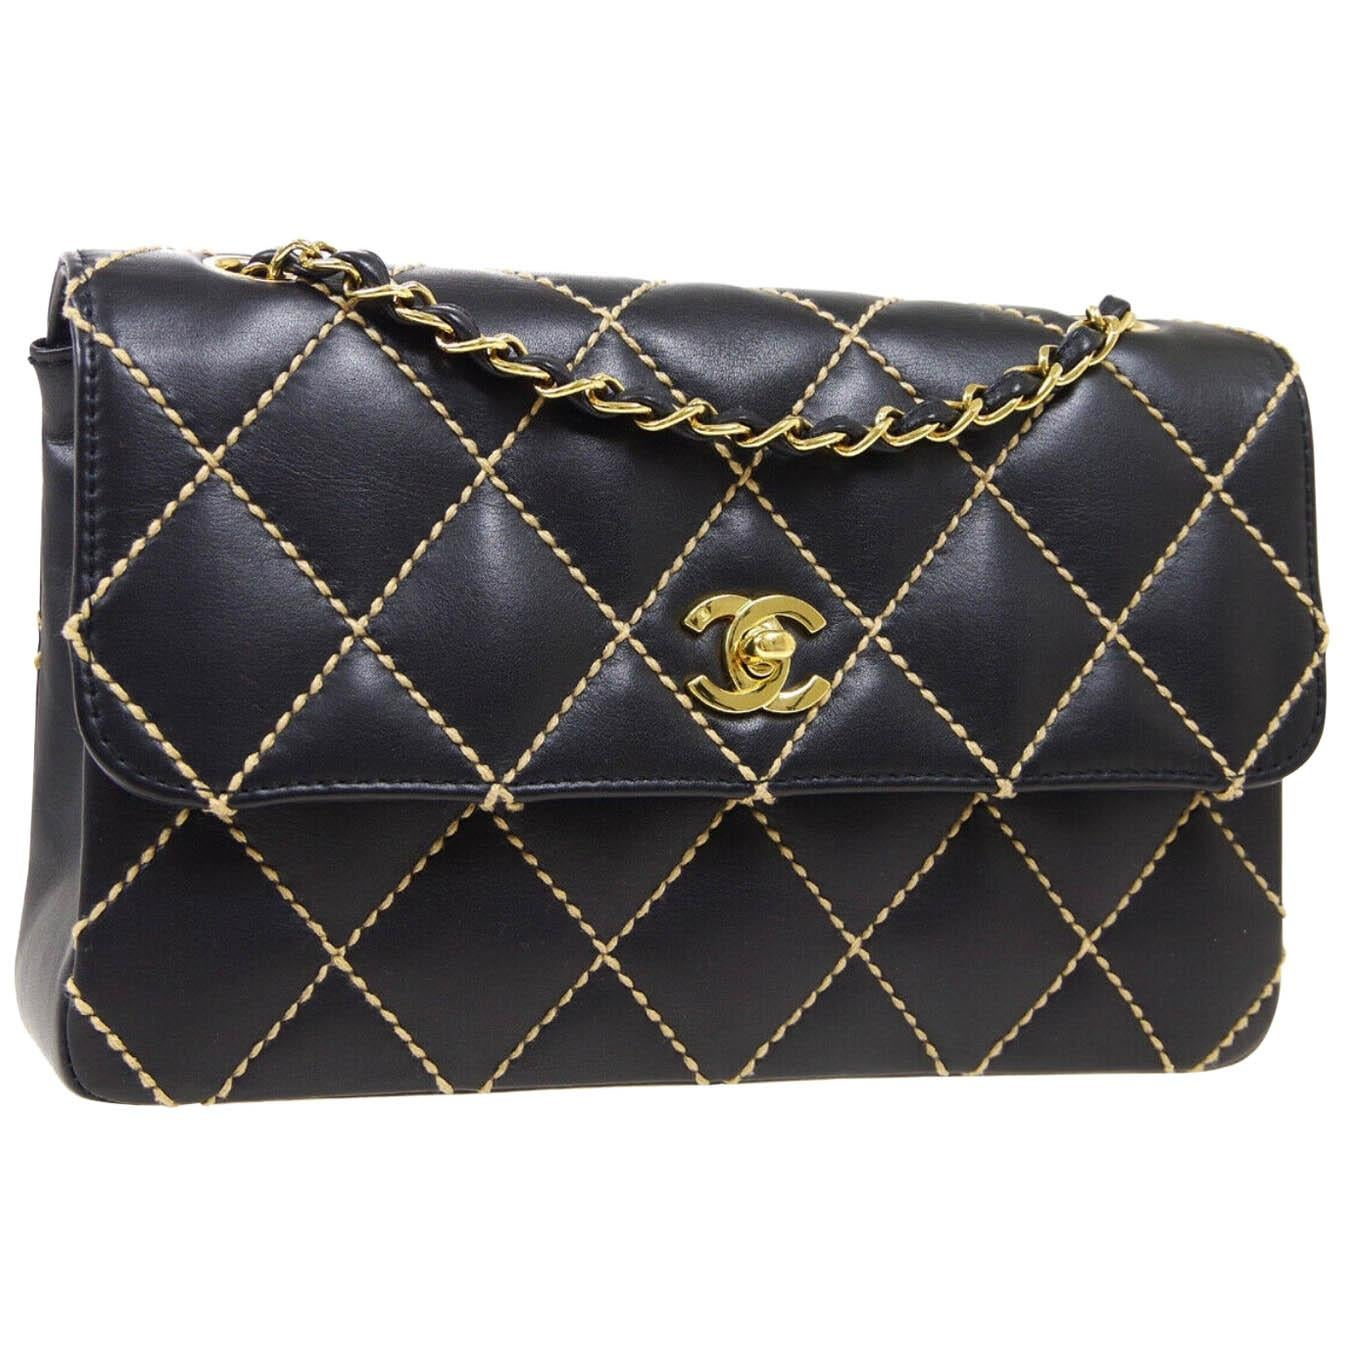 Chanel Black Leather Gold Medium Double Evening Shoulder Flap Bag